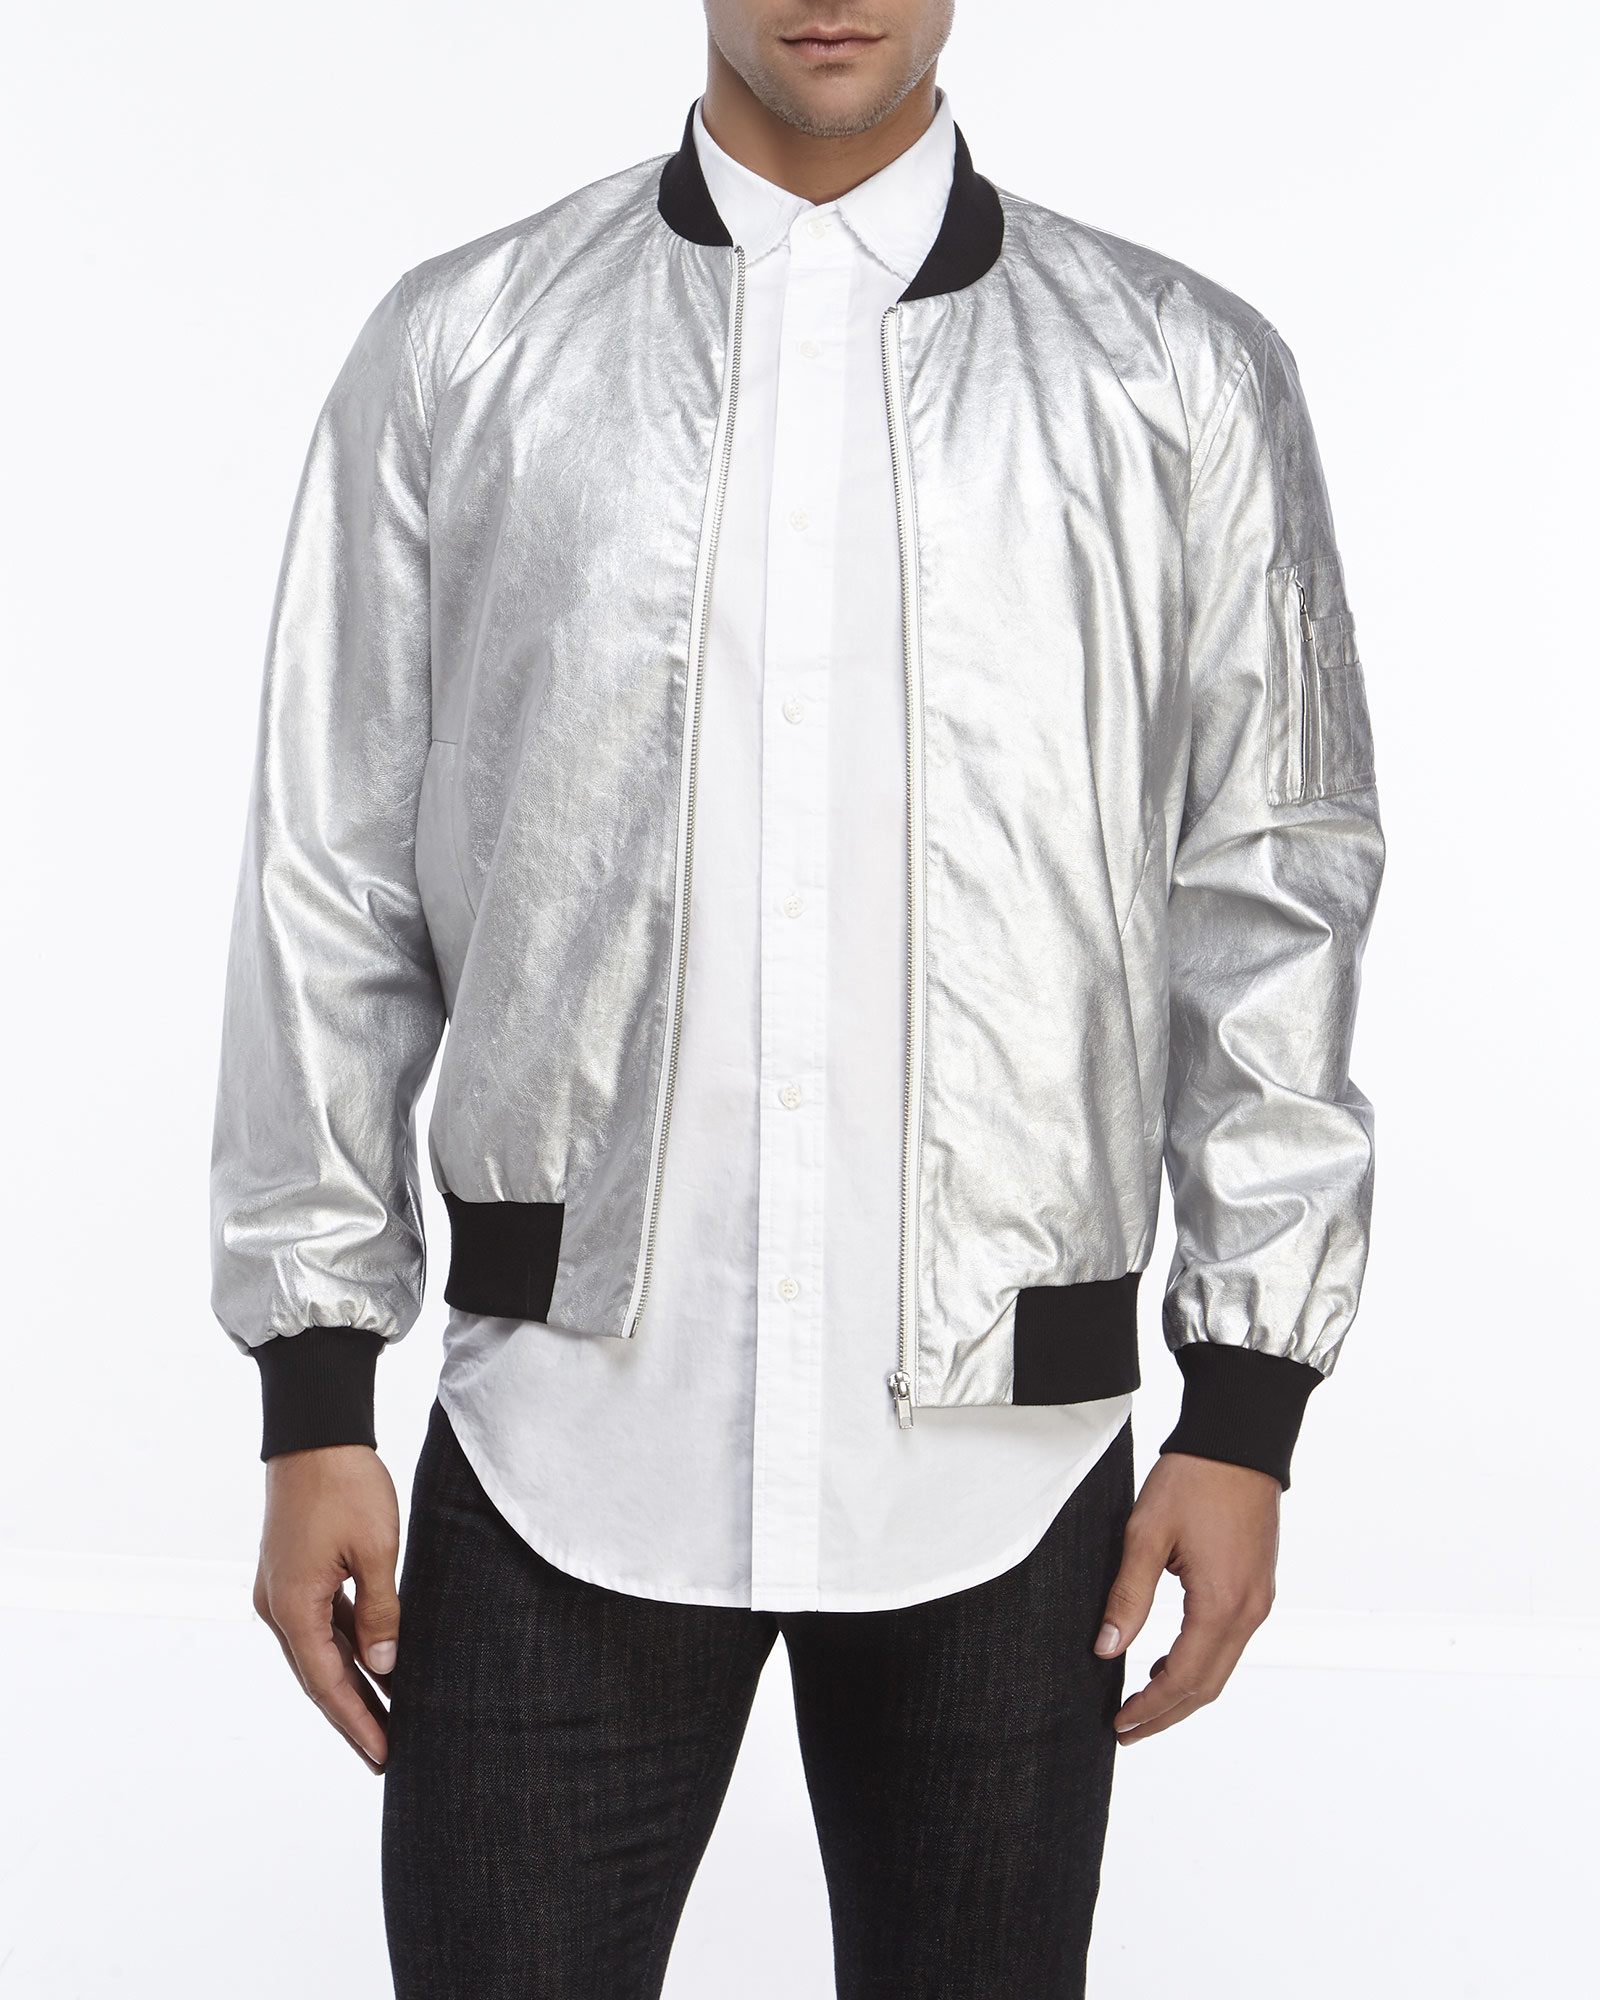 Shades of grey by micah cohen Metallic Bomber Jacket in Metallic